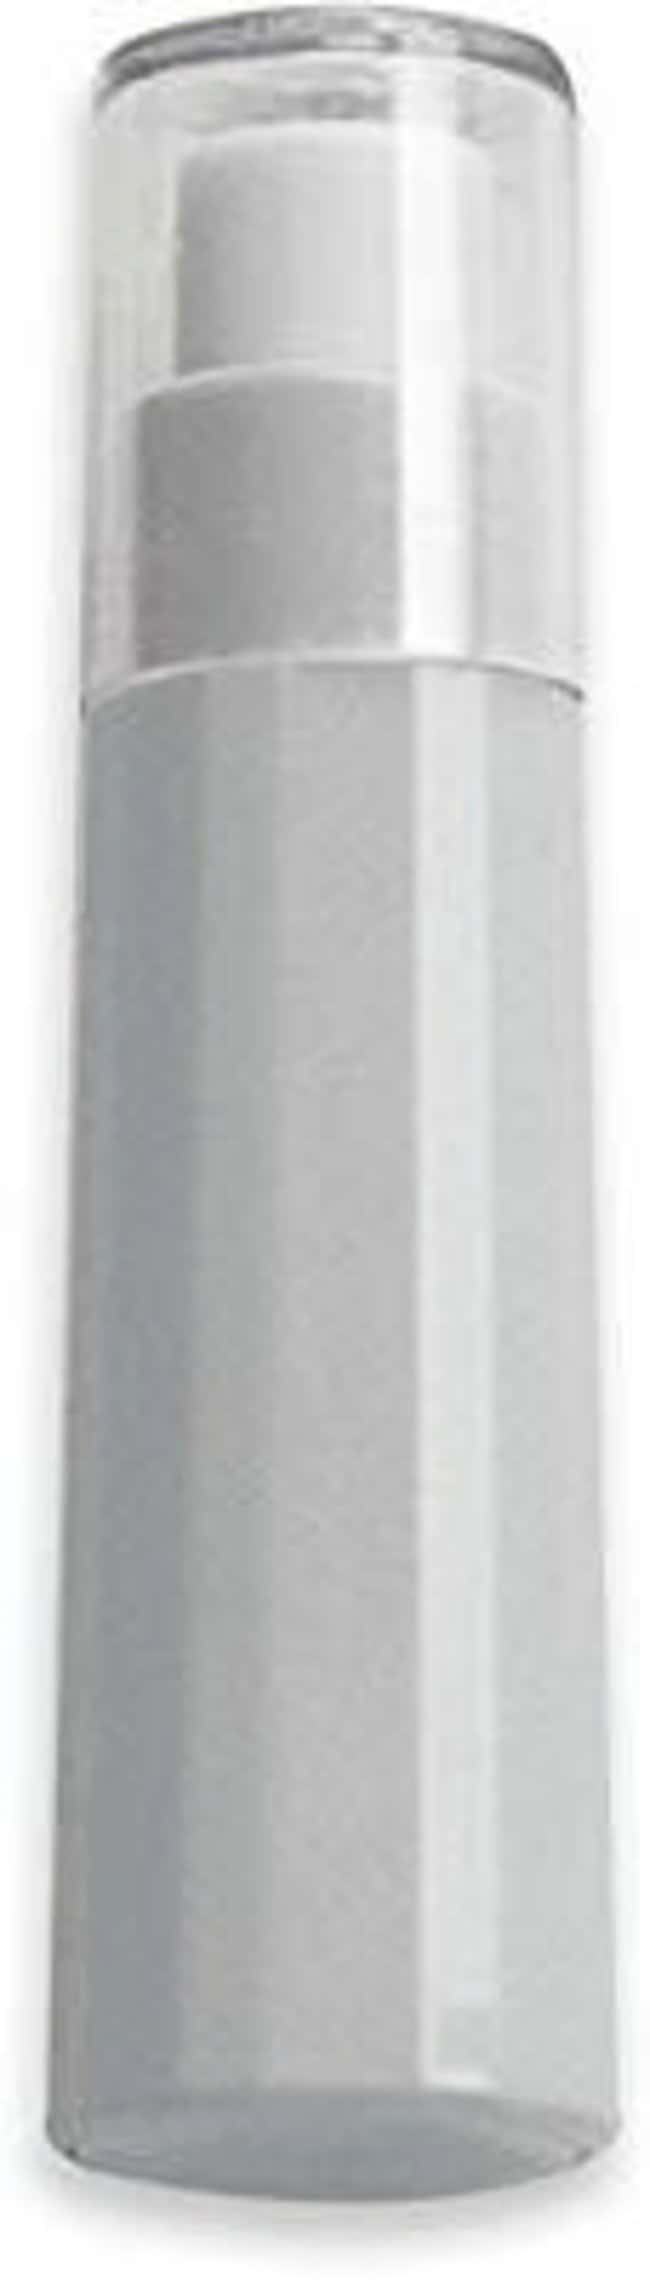 MediPurpose SurgiLance Lite Safety Lancets Depth: 1.8mm; Gauge: 28/G; Llow